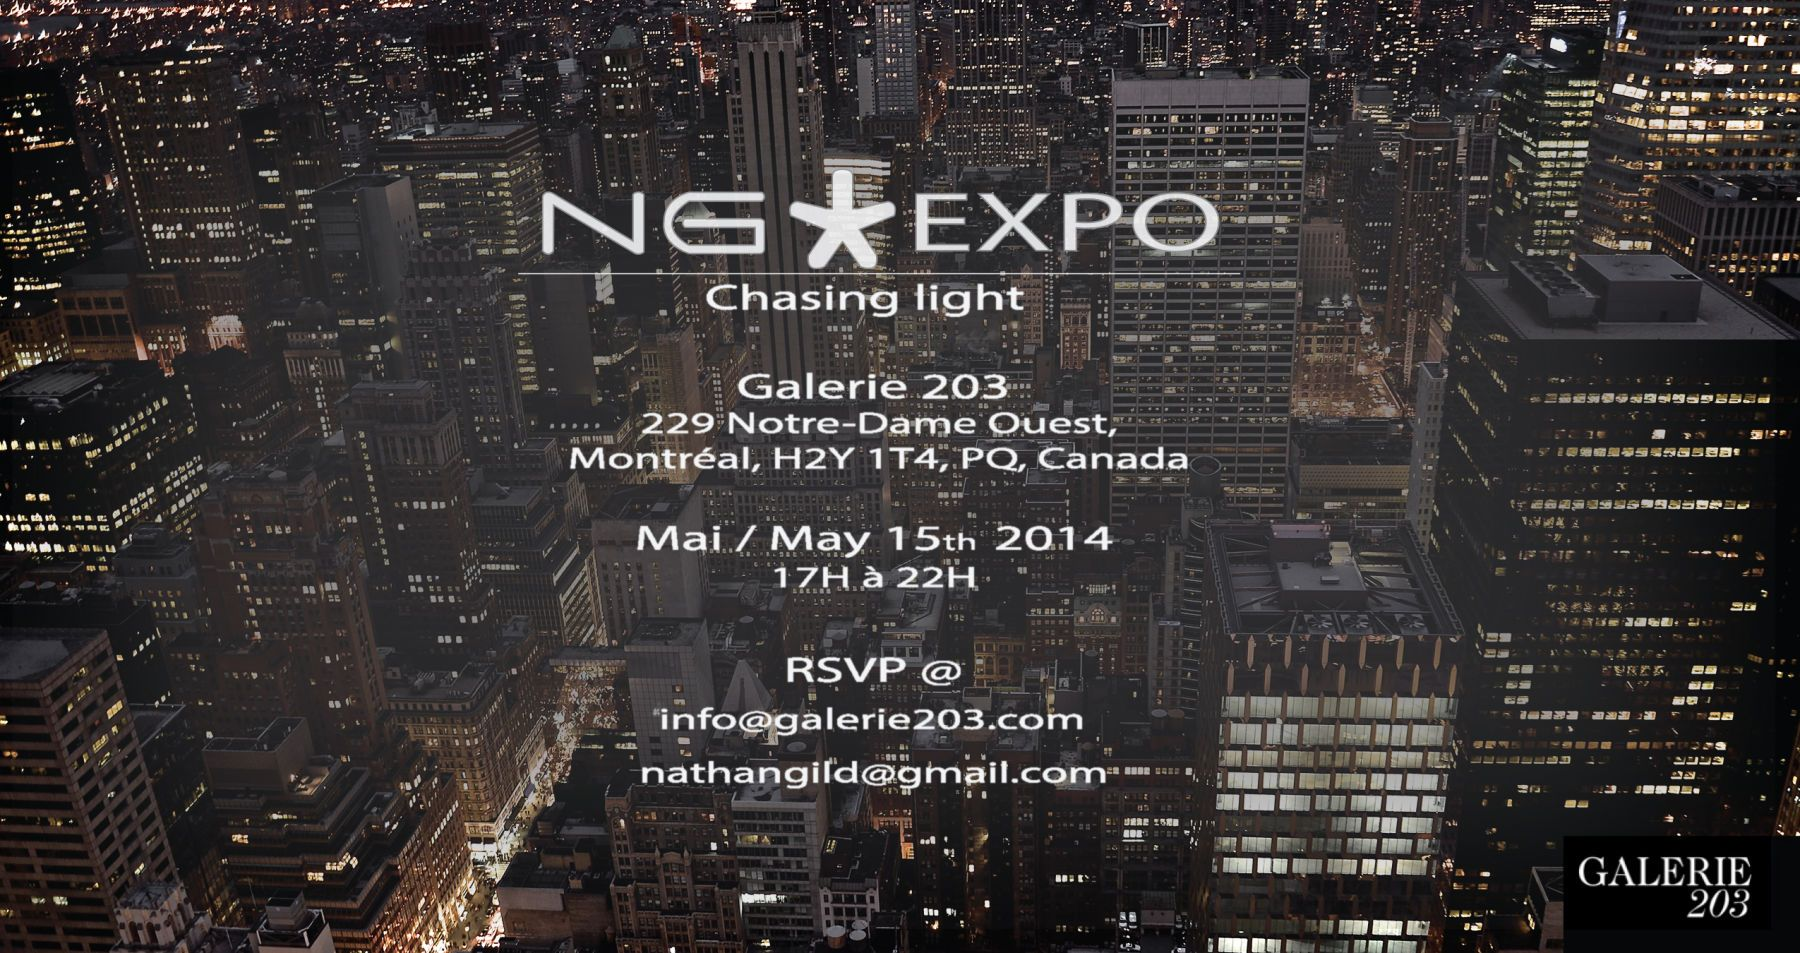 NGexpo ''Chasing light''